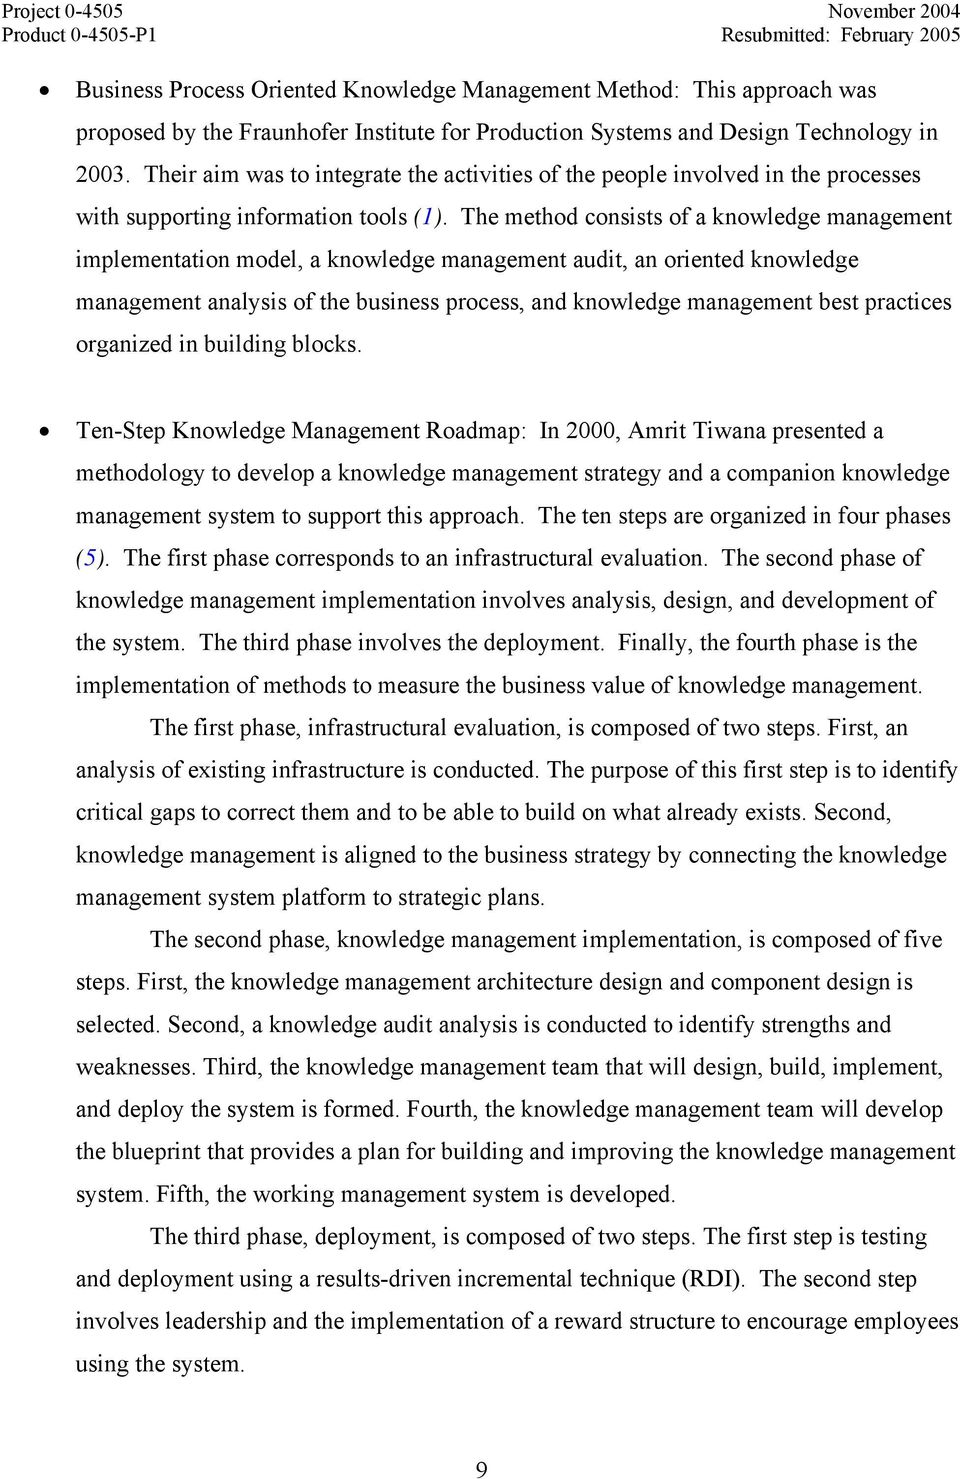 The method consists of a knowledge management implementation model, a knowledge management audit, an oriented knowledge management analysis of the business process, and knowledge management best